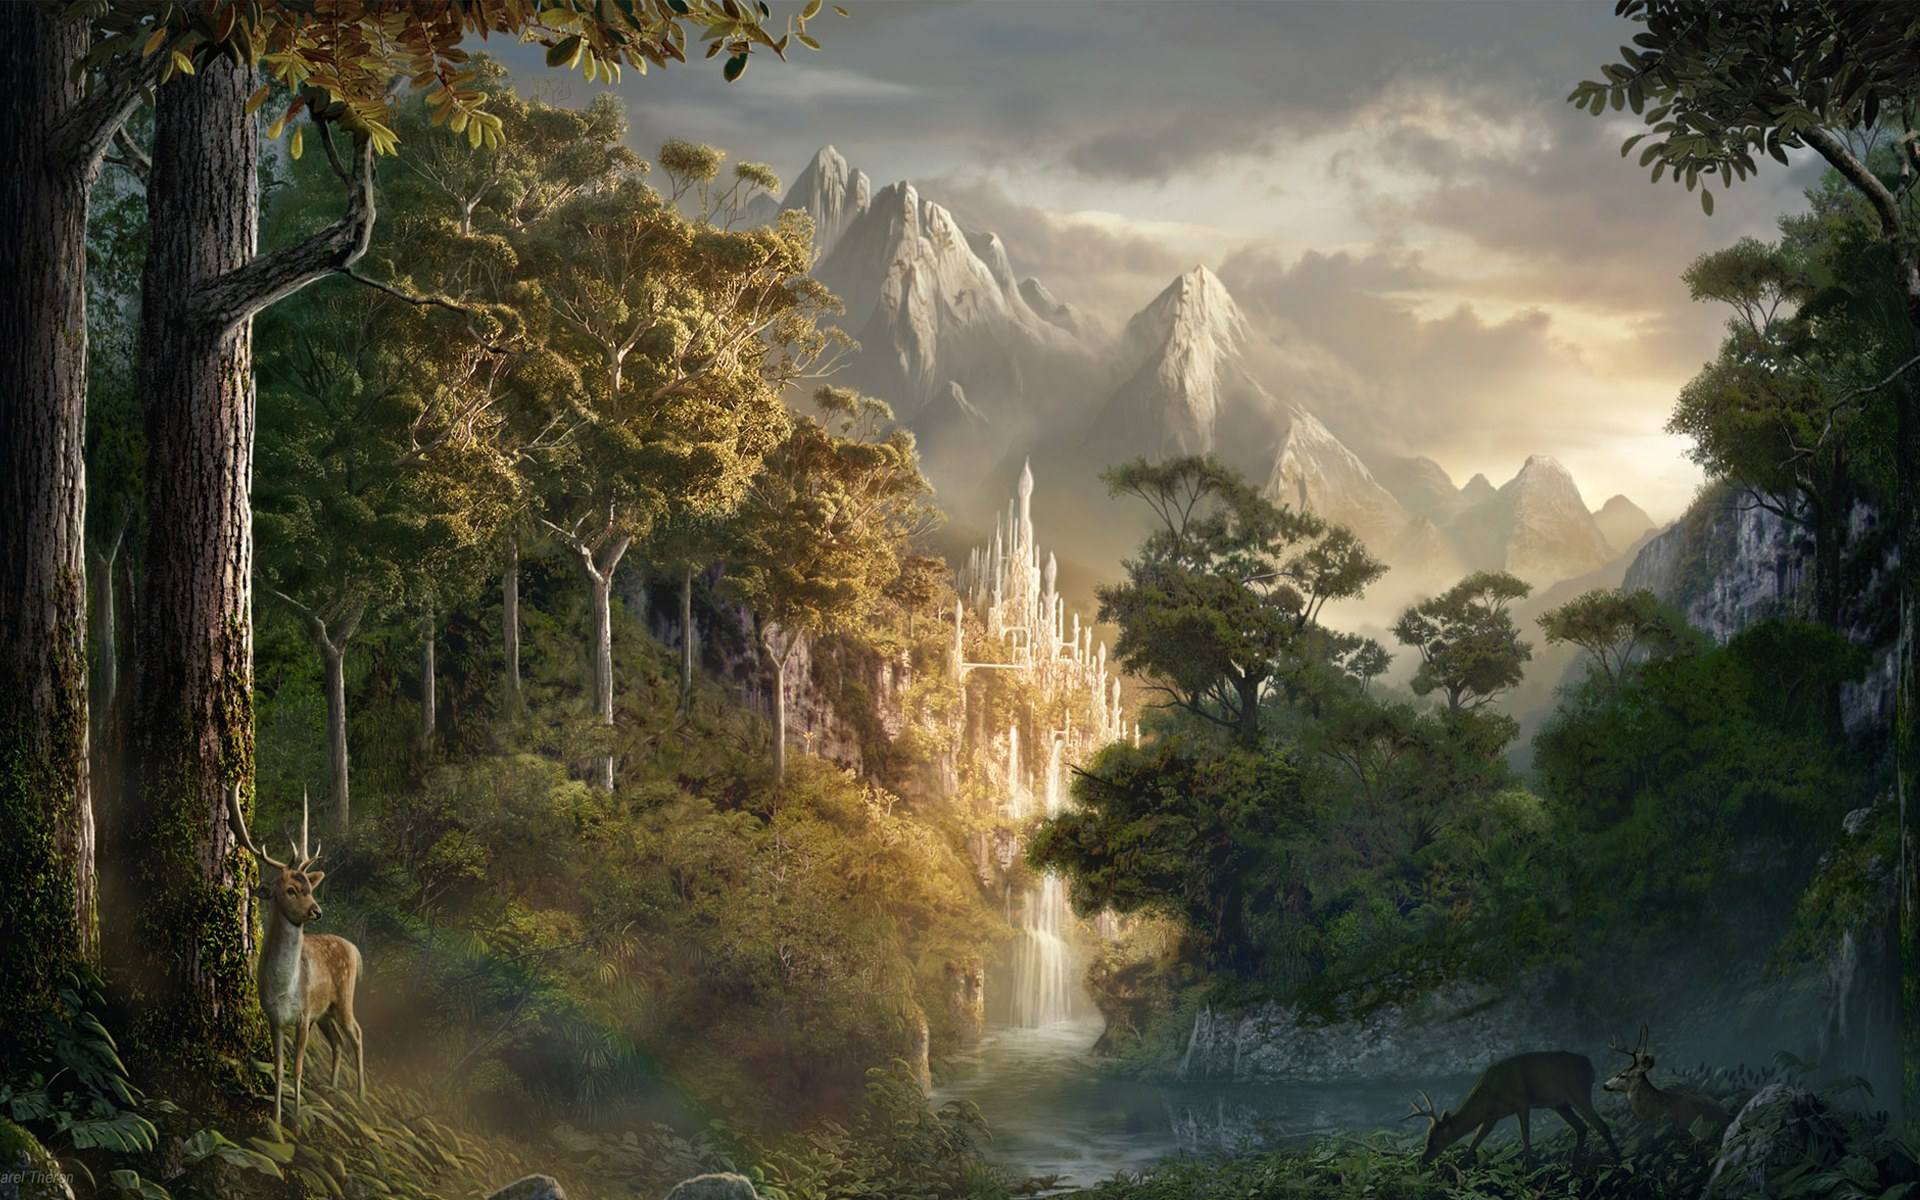 Fantasy art scenery by sarel theron